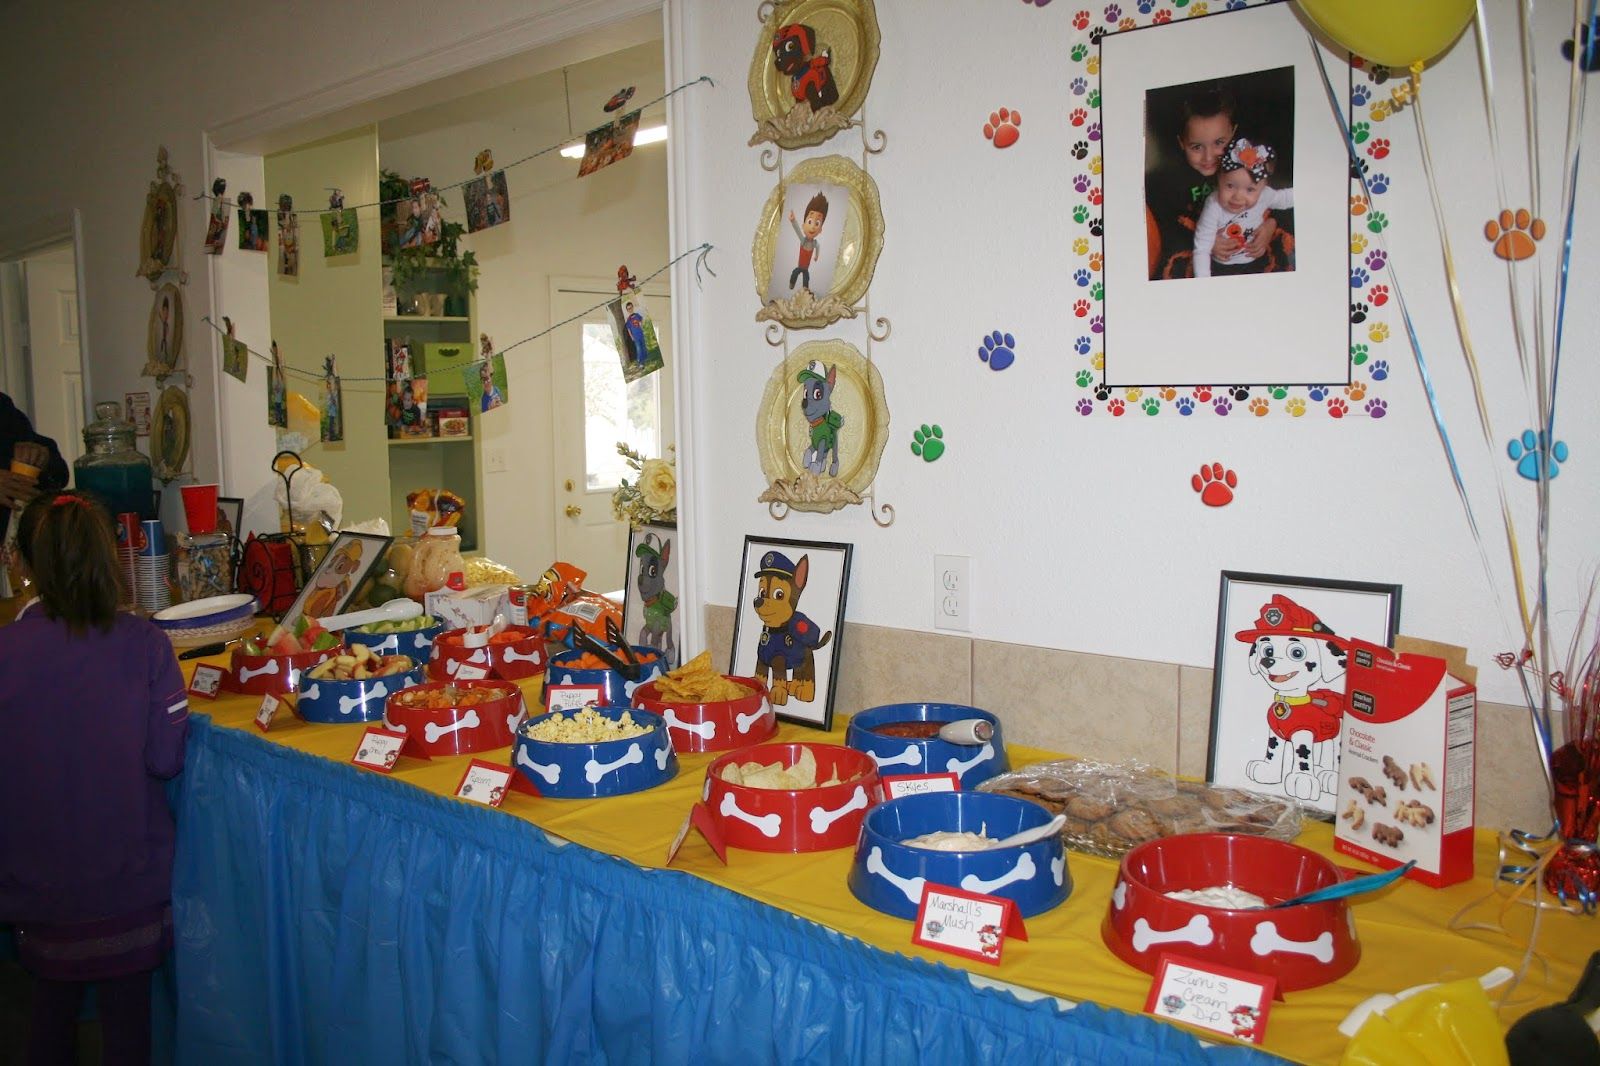 Paw Patrol Party: Jacob's Paw Patrol Party